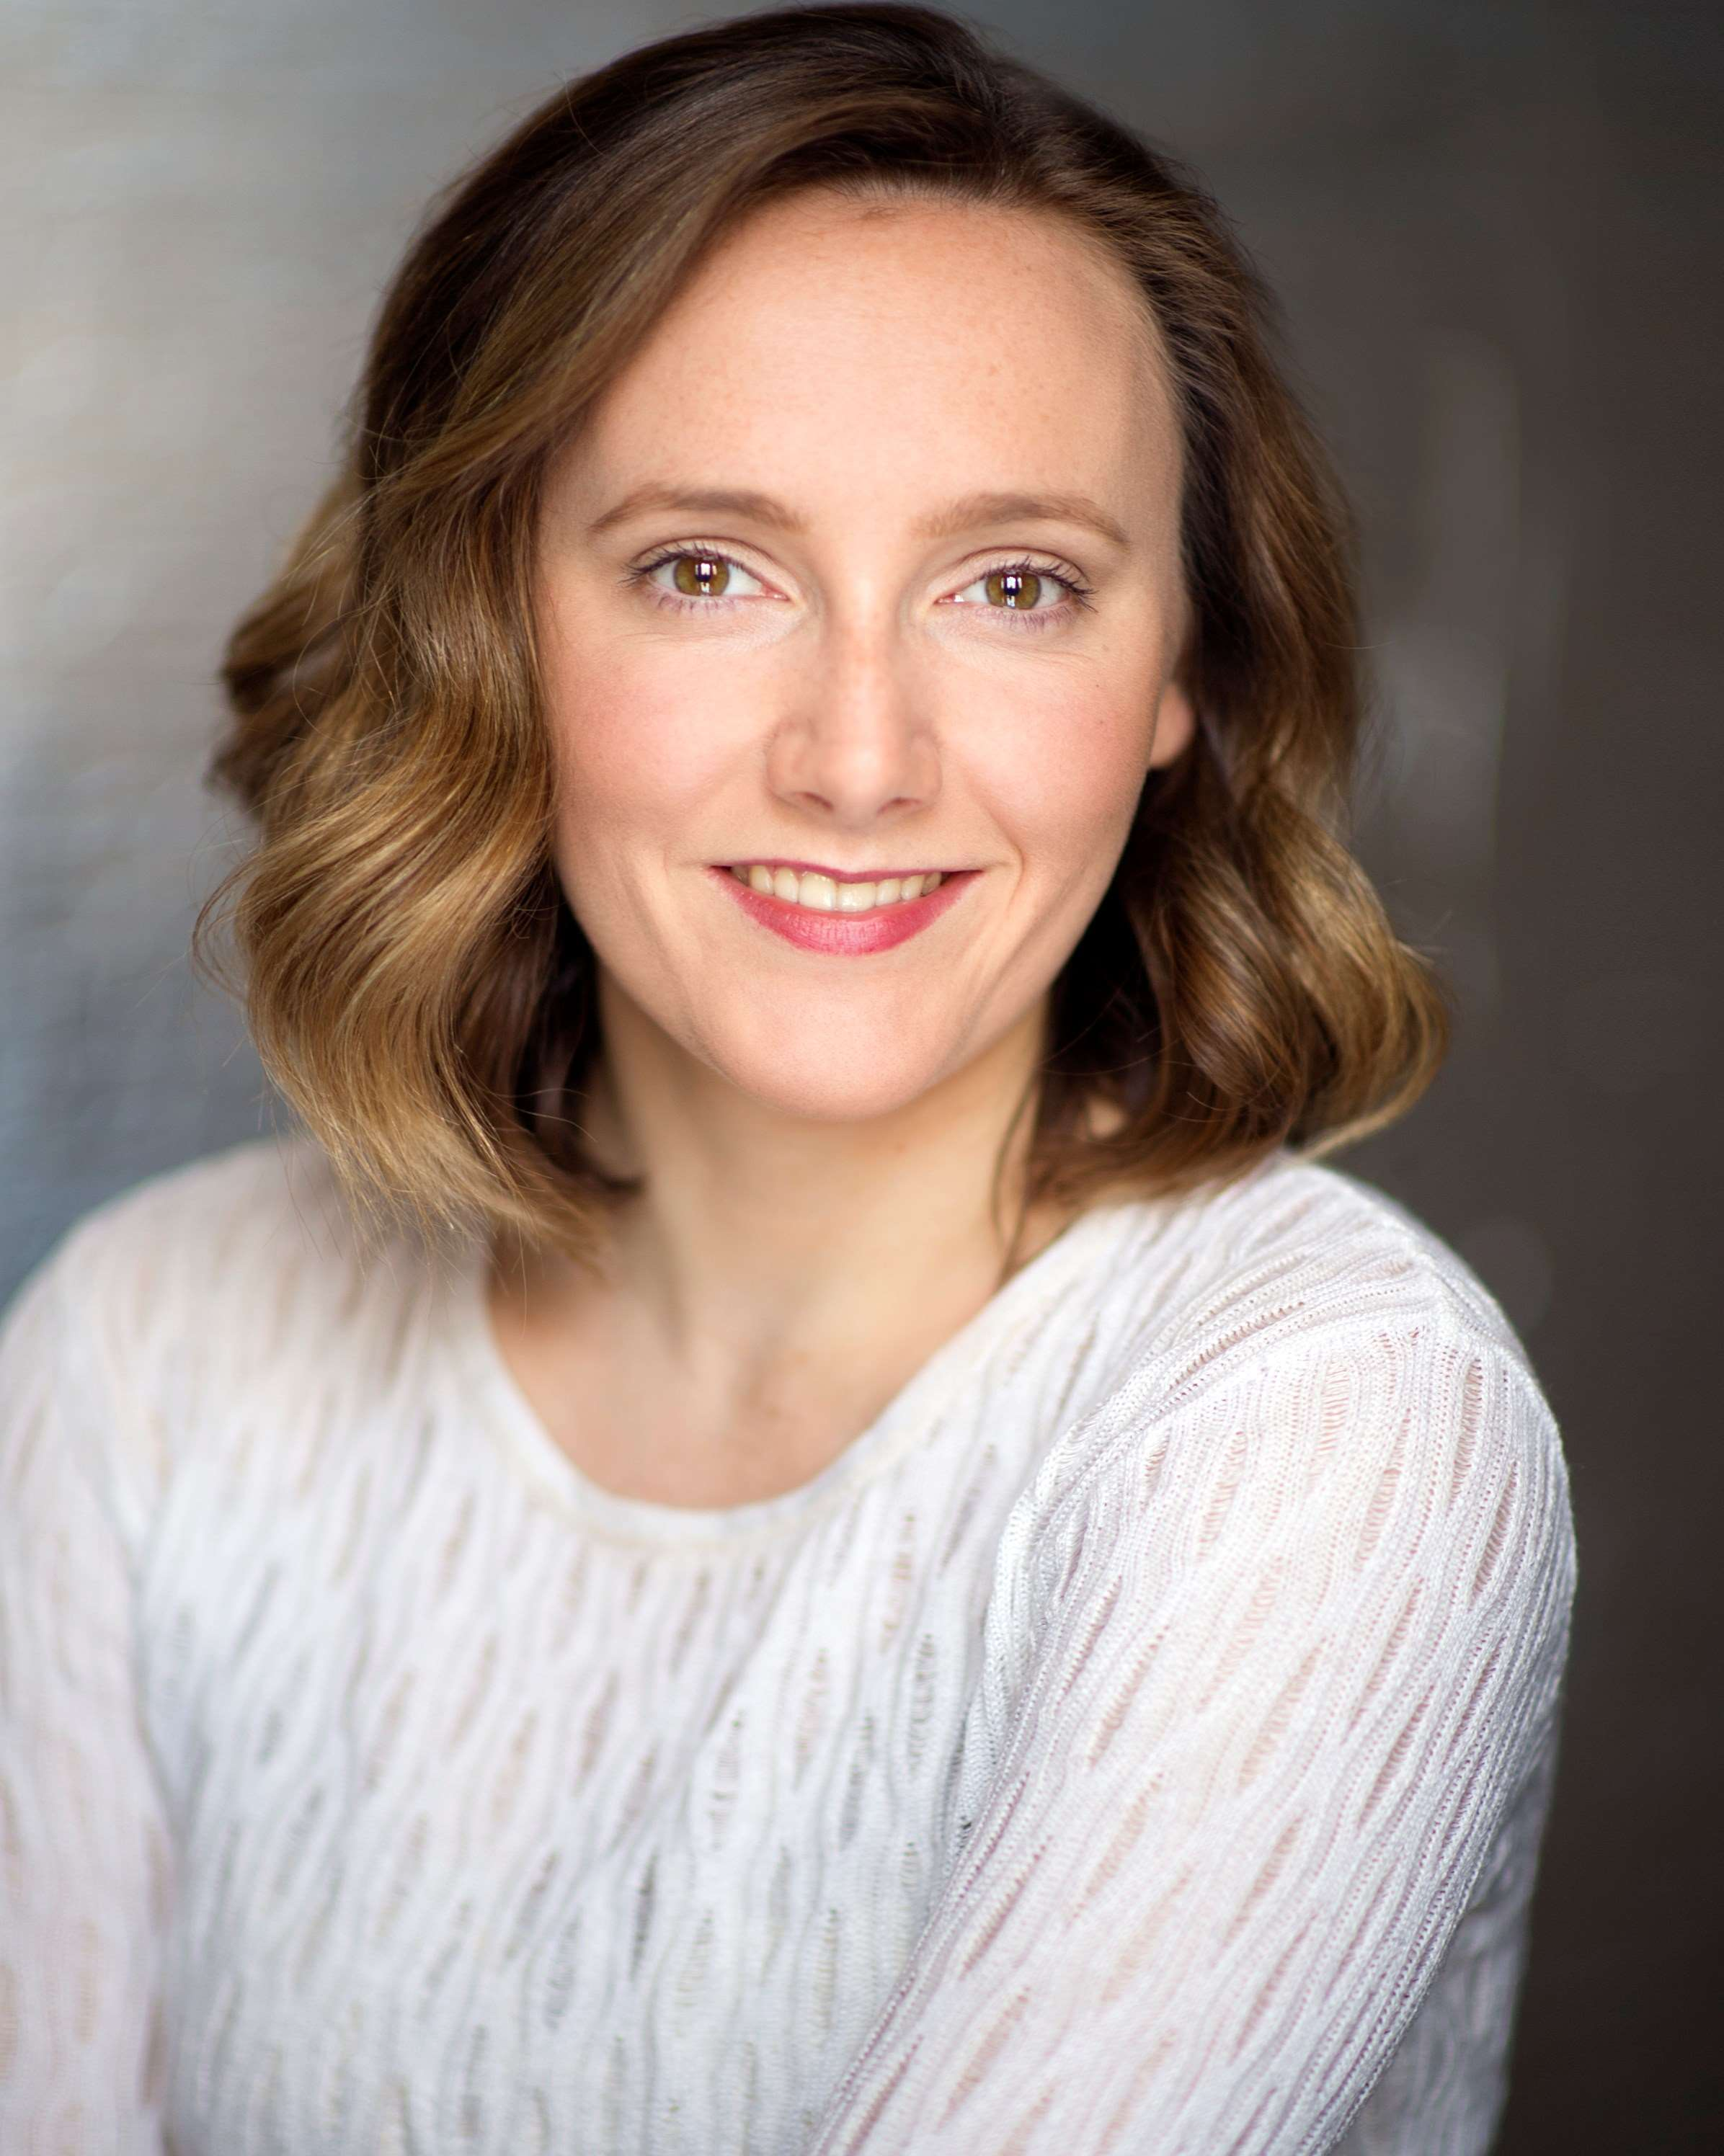 MANON GUNDERSON-BRIGGS - I started getting regular lessons with Jen after working with her at NIDA. I wanted to give my voice and performance more freedom and stop second-guessing myself. Jen helped me appreciate my own uniqueness, which was instrumental in getting me my first professional gig in Muriel's Wedding the Musical. Jen is an excellent, friendly teacher with a deep knowledge of singing, performance and the industry. I would recommend her to anyone — she just gets it!